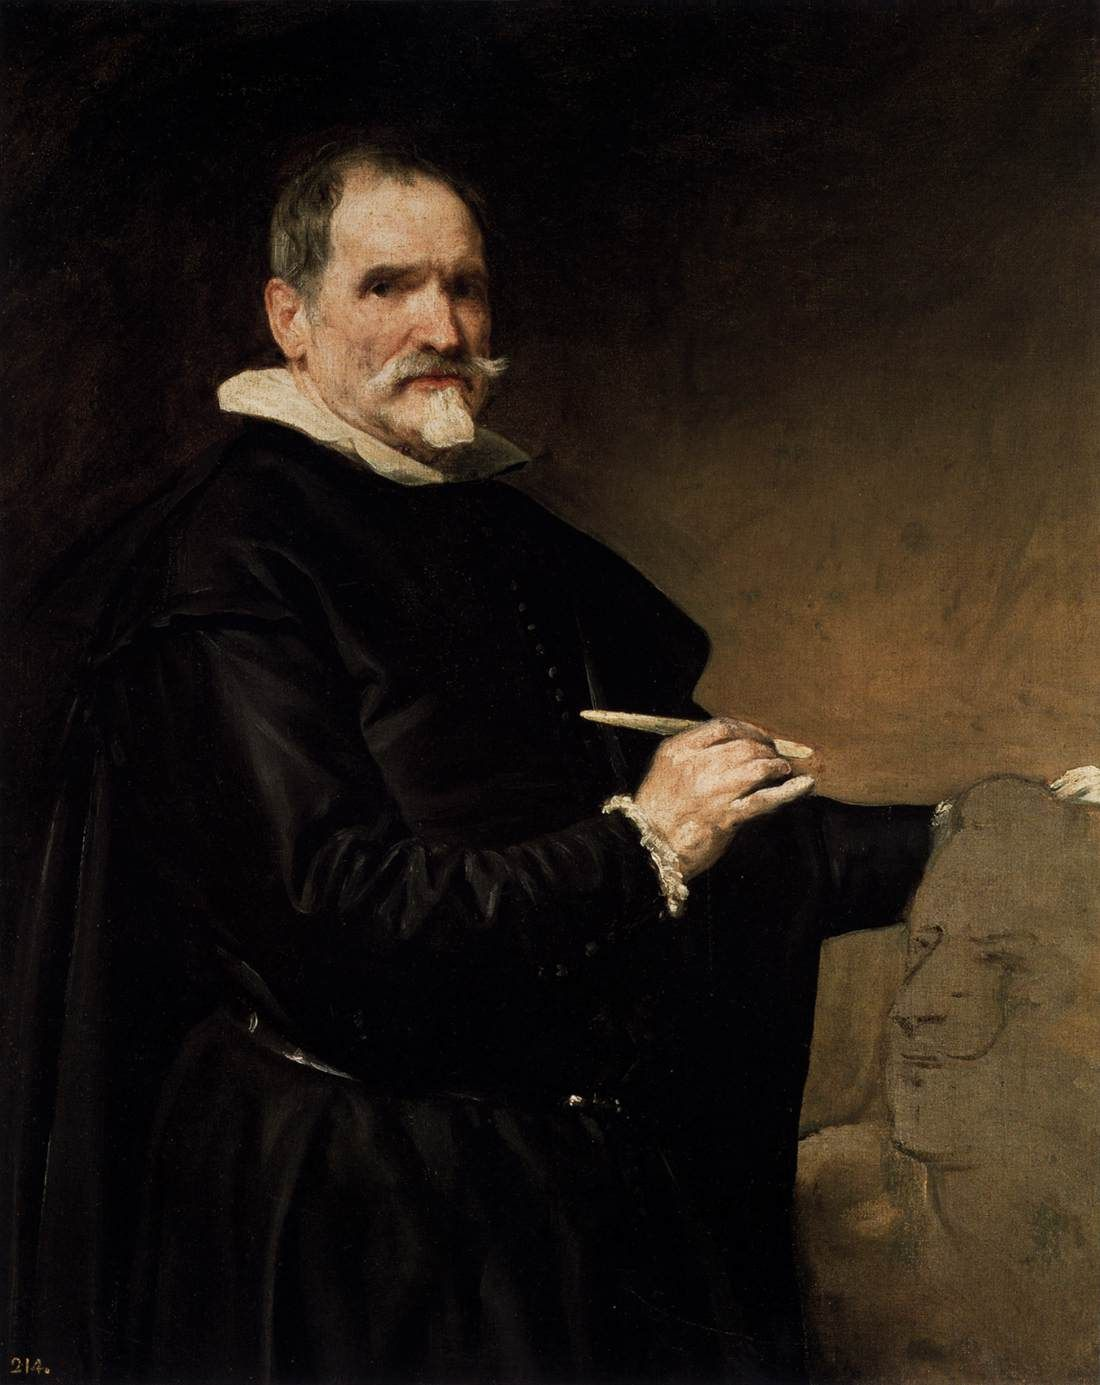 Portrait of the Sculptor, Juan Martinez Montanes - Diego Velazquez